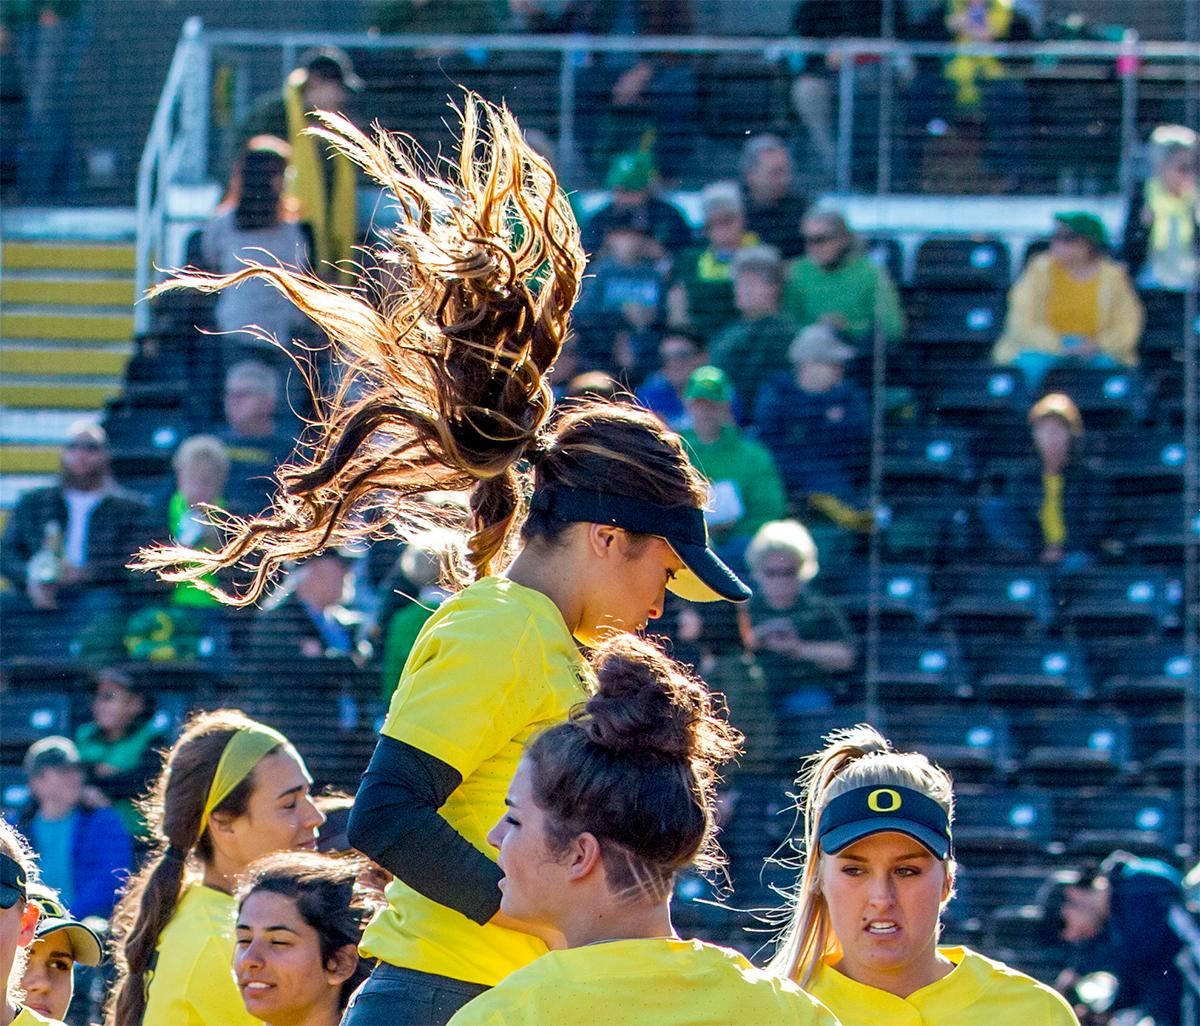 The Duck's Sammie Puentes (#5) jumps into the air as the team gets pumped up for the game. The Oregon Ducks defeated the Oregon State Beavers 8-0 in game one of the three-game Civil War series on Friday night at Jane Sanders Stadium. The game was 0-0 until Gwen Svekis (#21) hit a solo home run in the fourth inning. Mia Camuso hit a grand slam in the fifth inning, ending the game for the Ducks by mercy rule. With tonight's victory, the Ducks are 39-6 and 12-6 in Pac-12 play. Photo by August Frank, Oregon News Lab